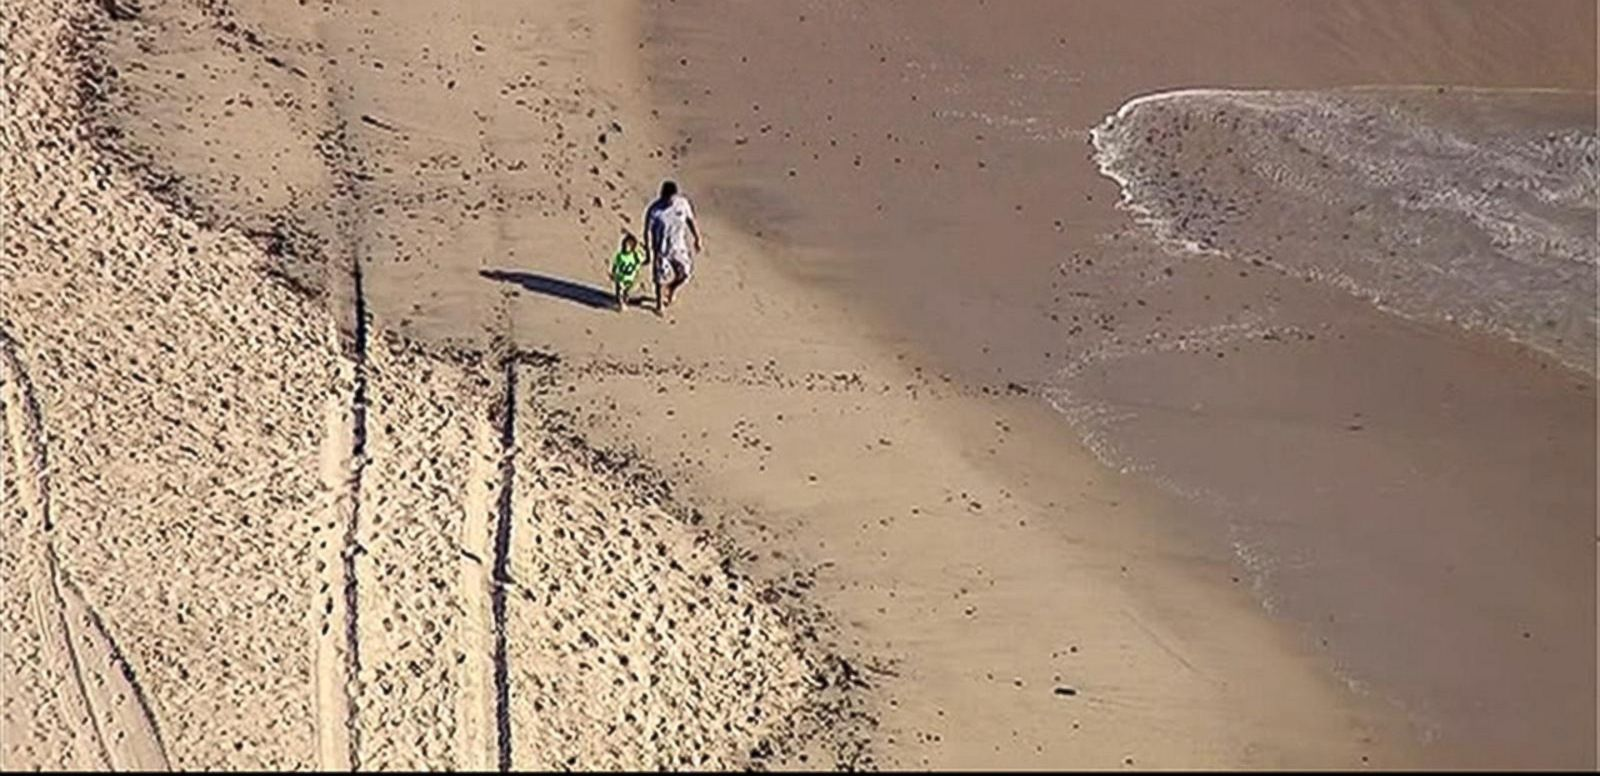 VIDEO: The news comes a week after an oil pipeline ruptured in Santa Barbara.